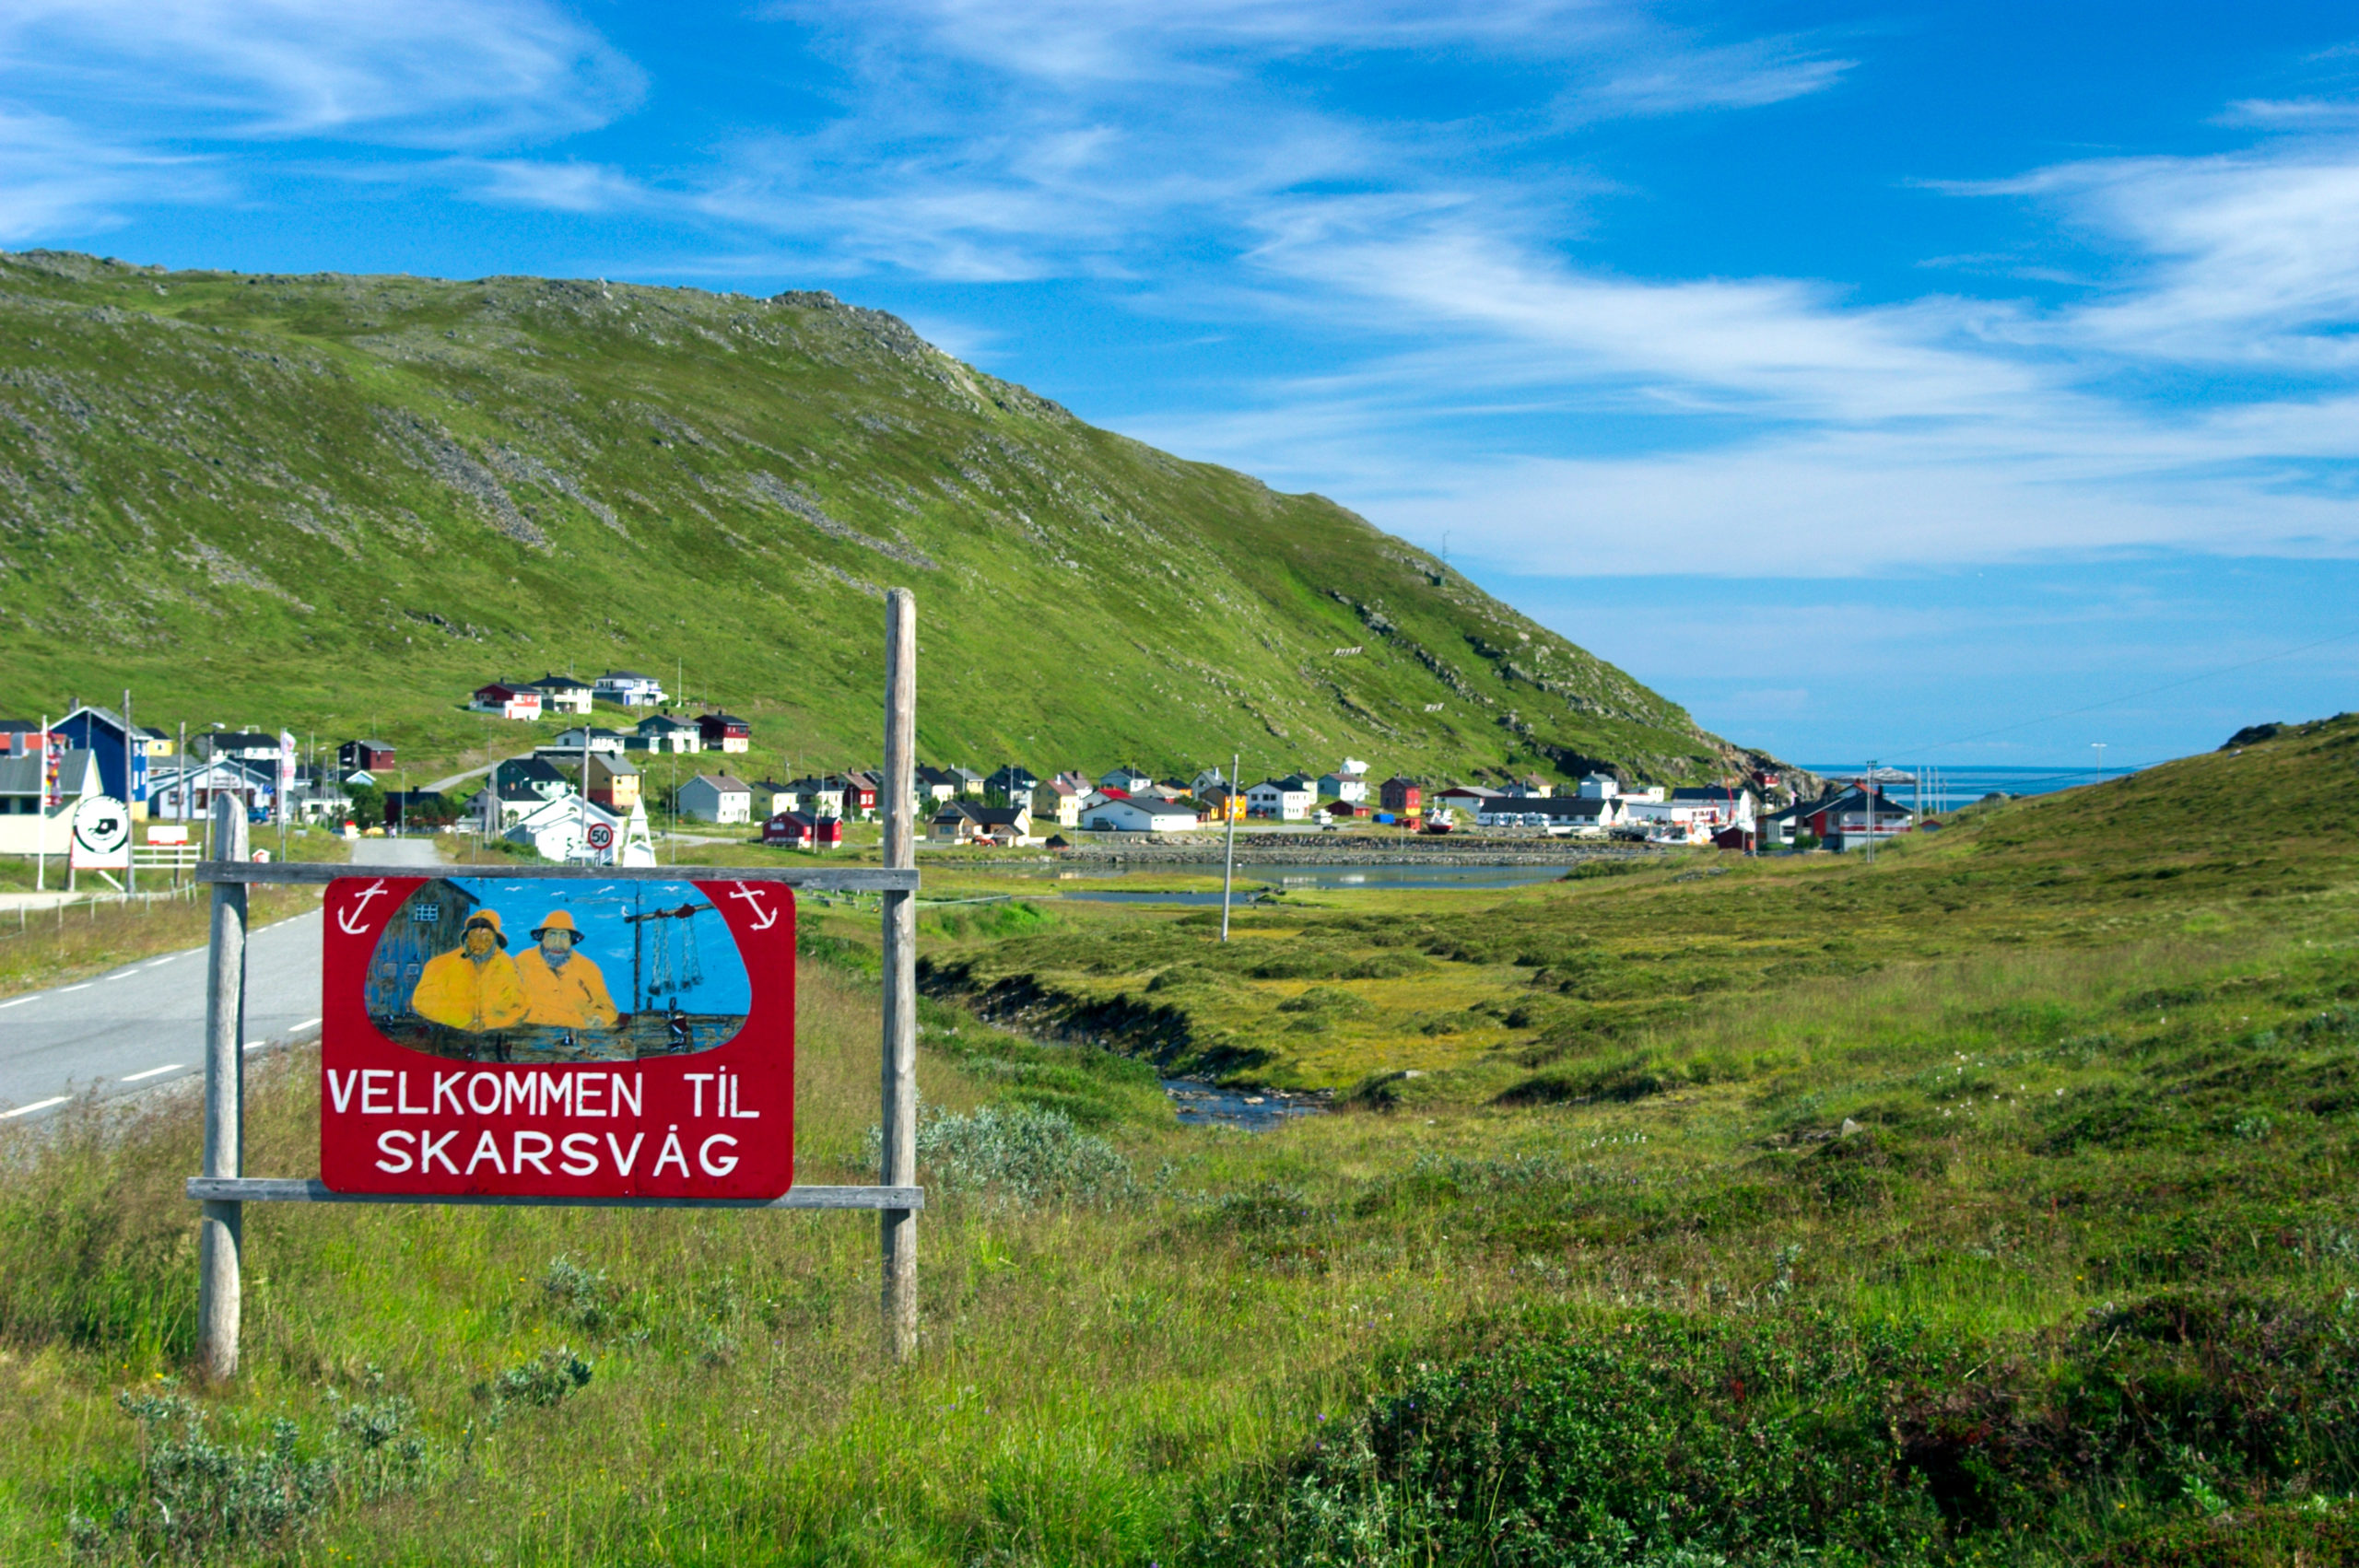 Skarsvåg, the world's most northerly fishing village © Bjarne Riesto